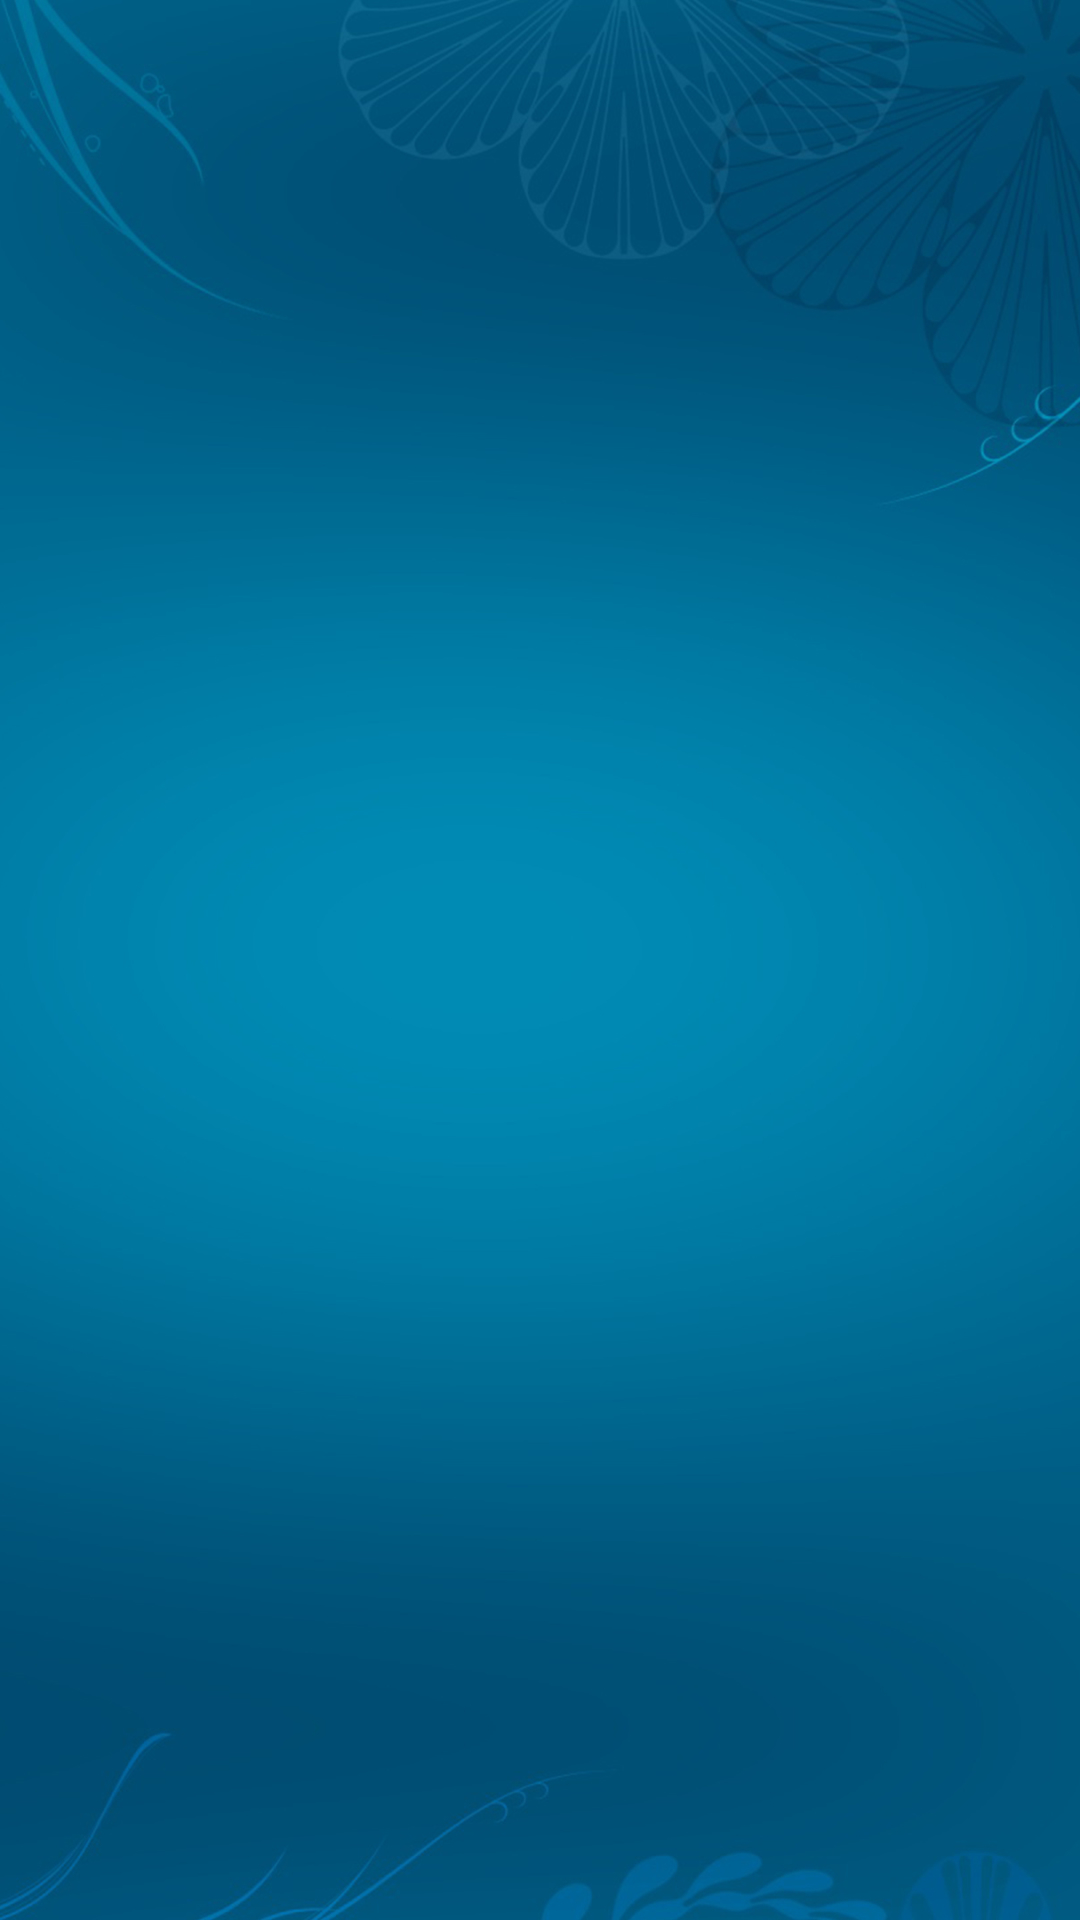 Windows 8 Wallpapers For Mobile (28 Wallpapers)